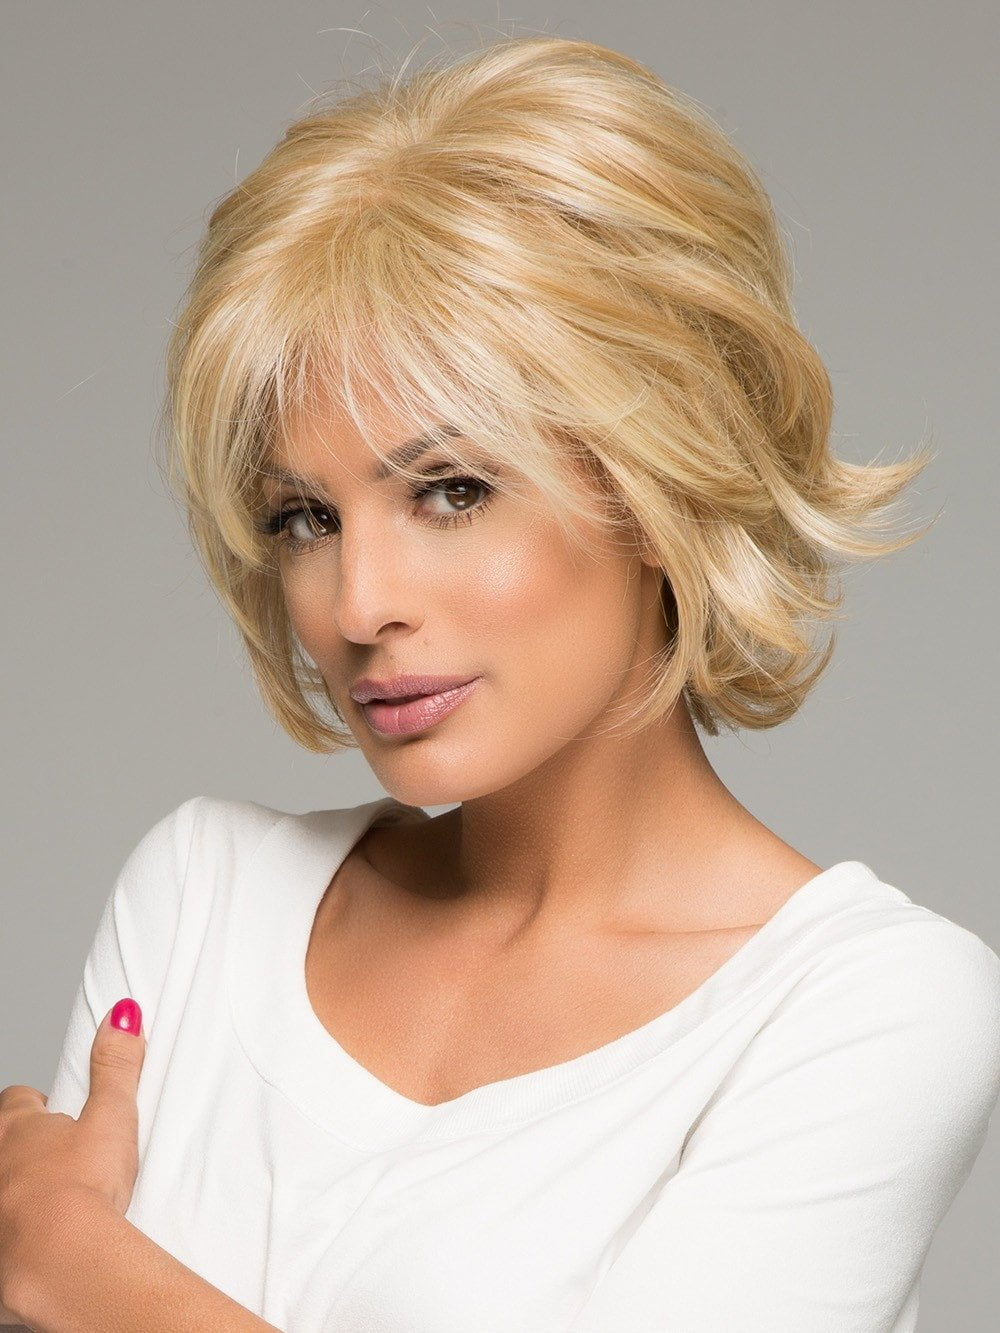 Jon Renau Naomi is a layered and lovely short wig. Flirt with the endlessly layered styles of this chin length shag